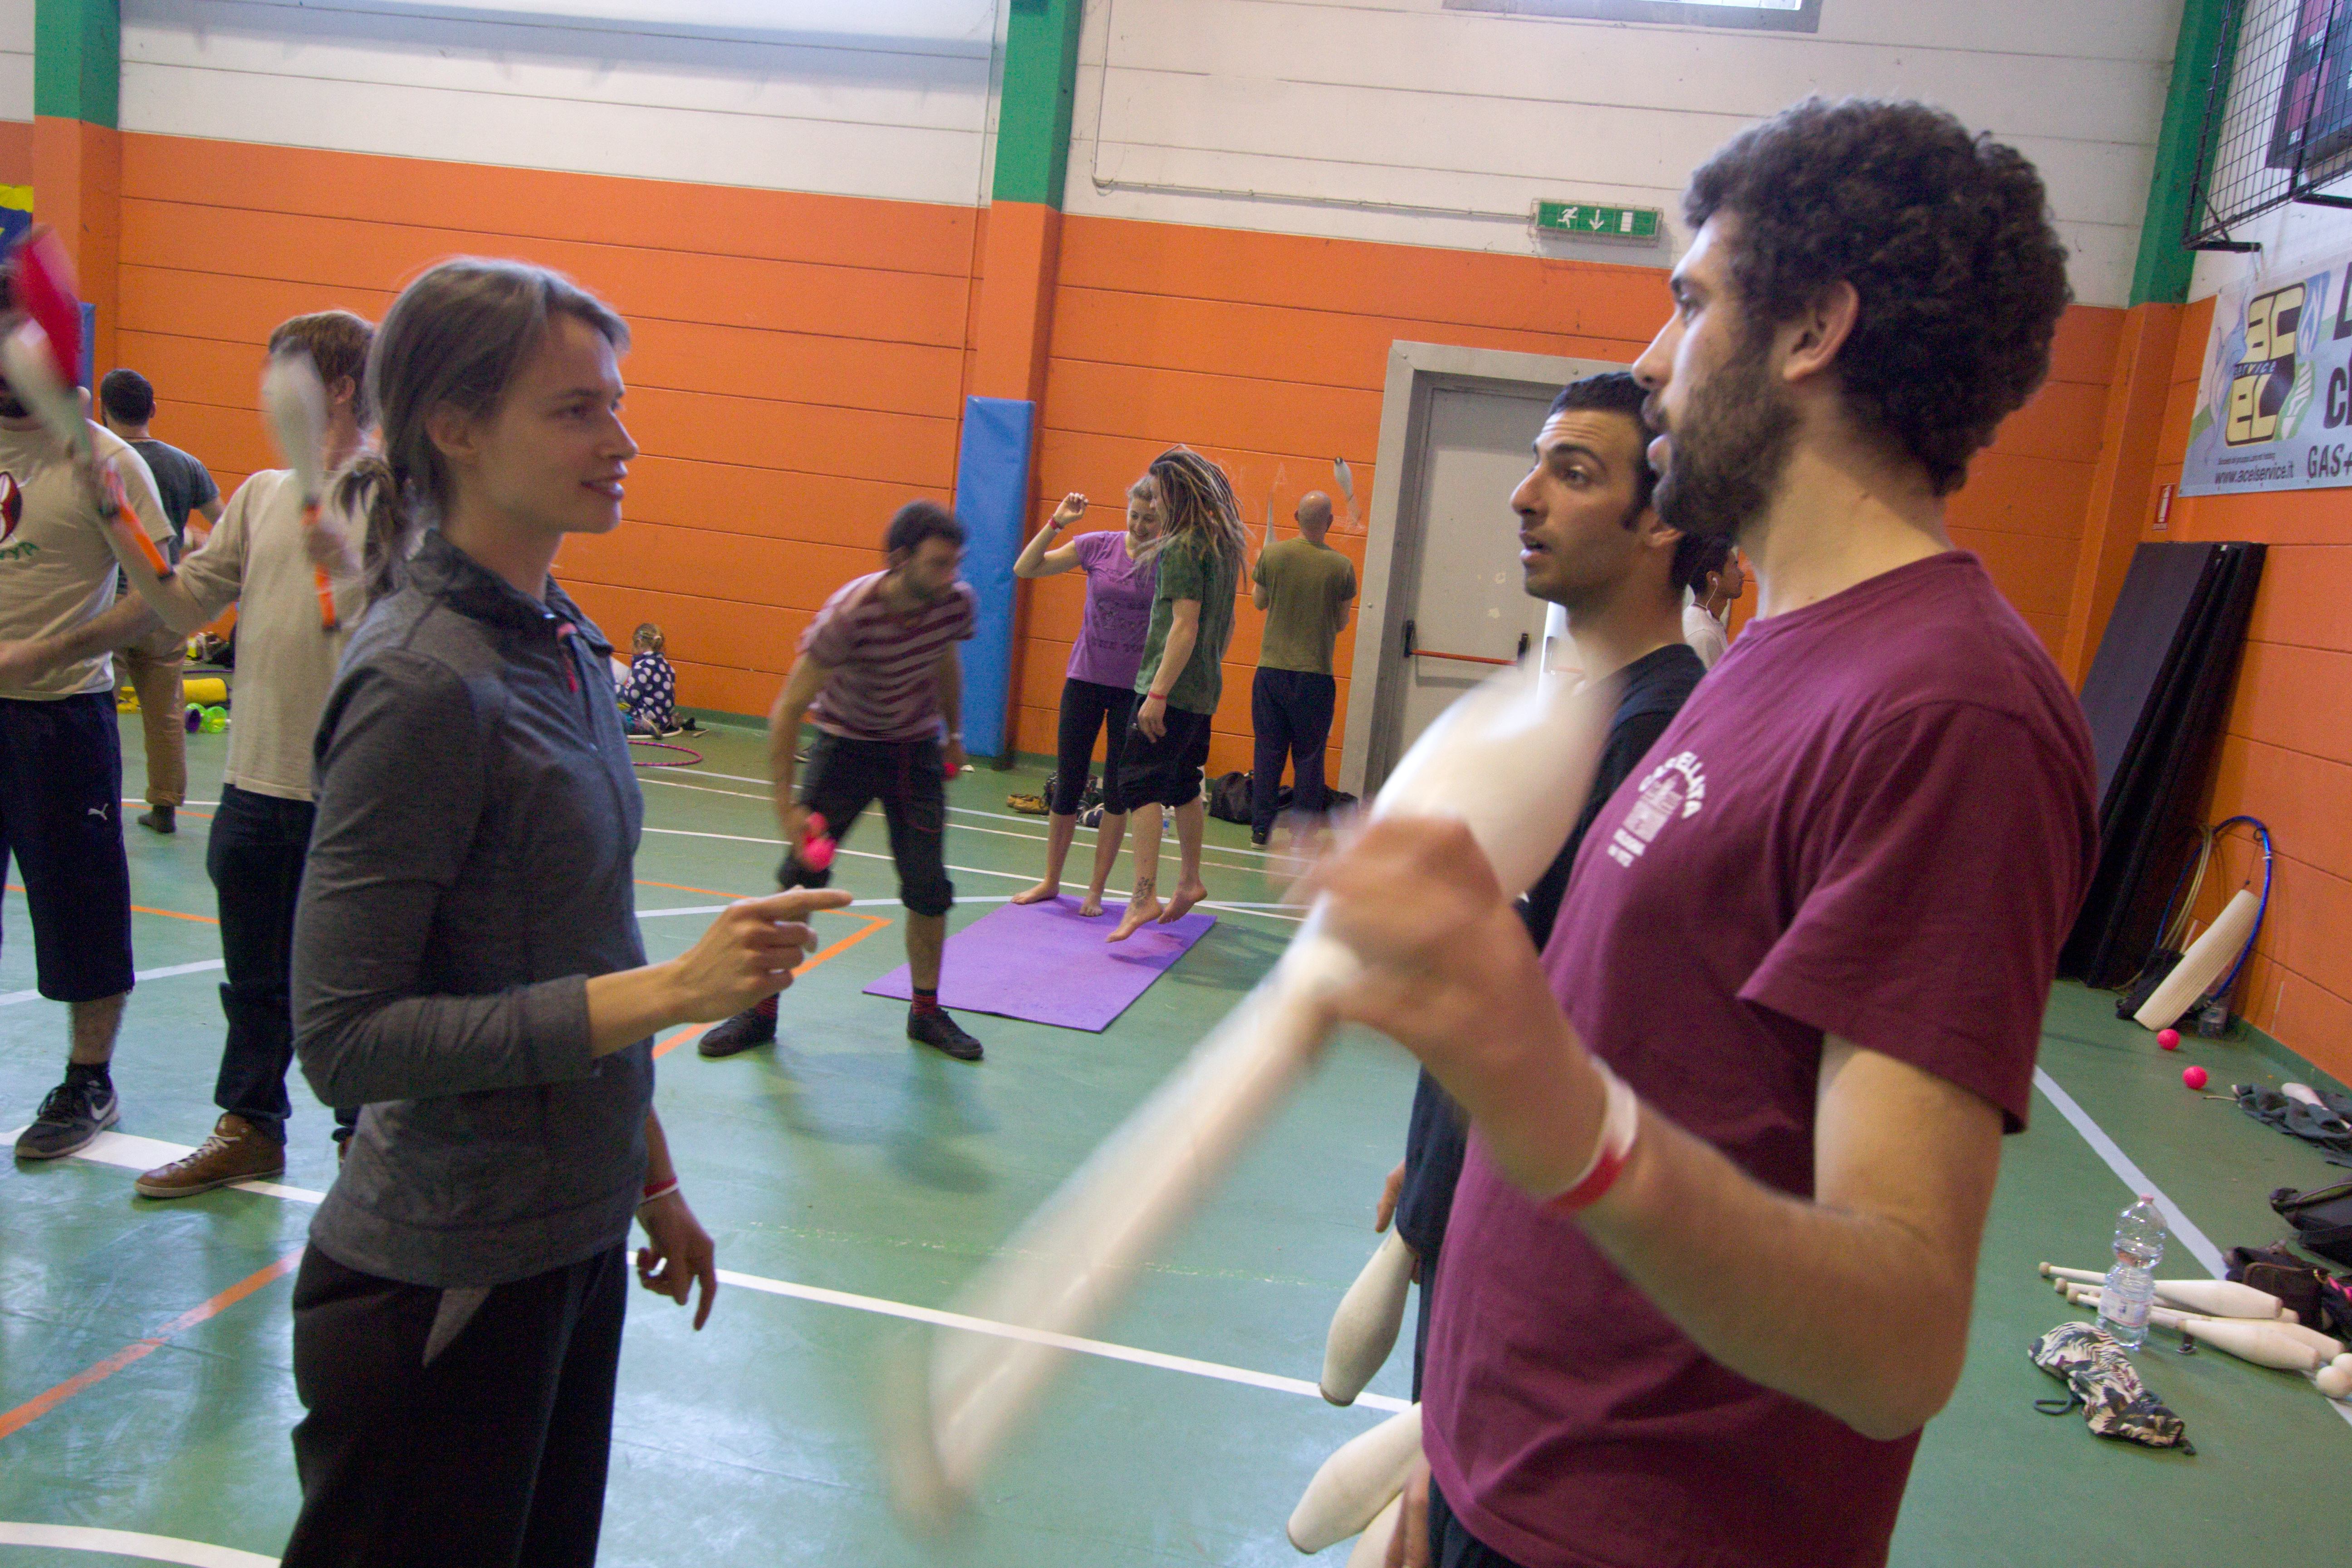 Brianza Juggling Convention 2016: Passing Workshop with Tine and Doreen.